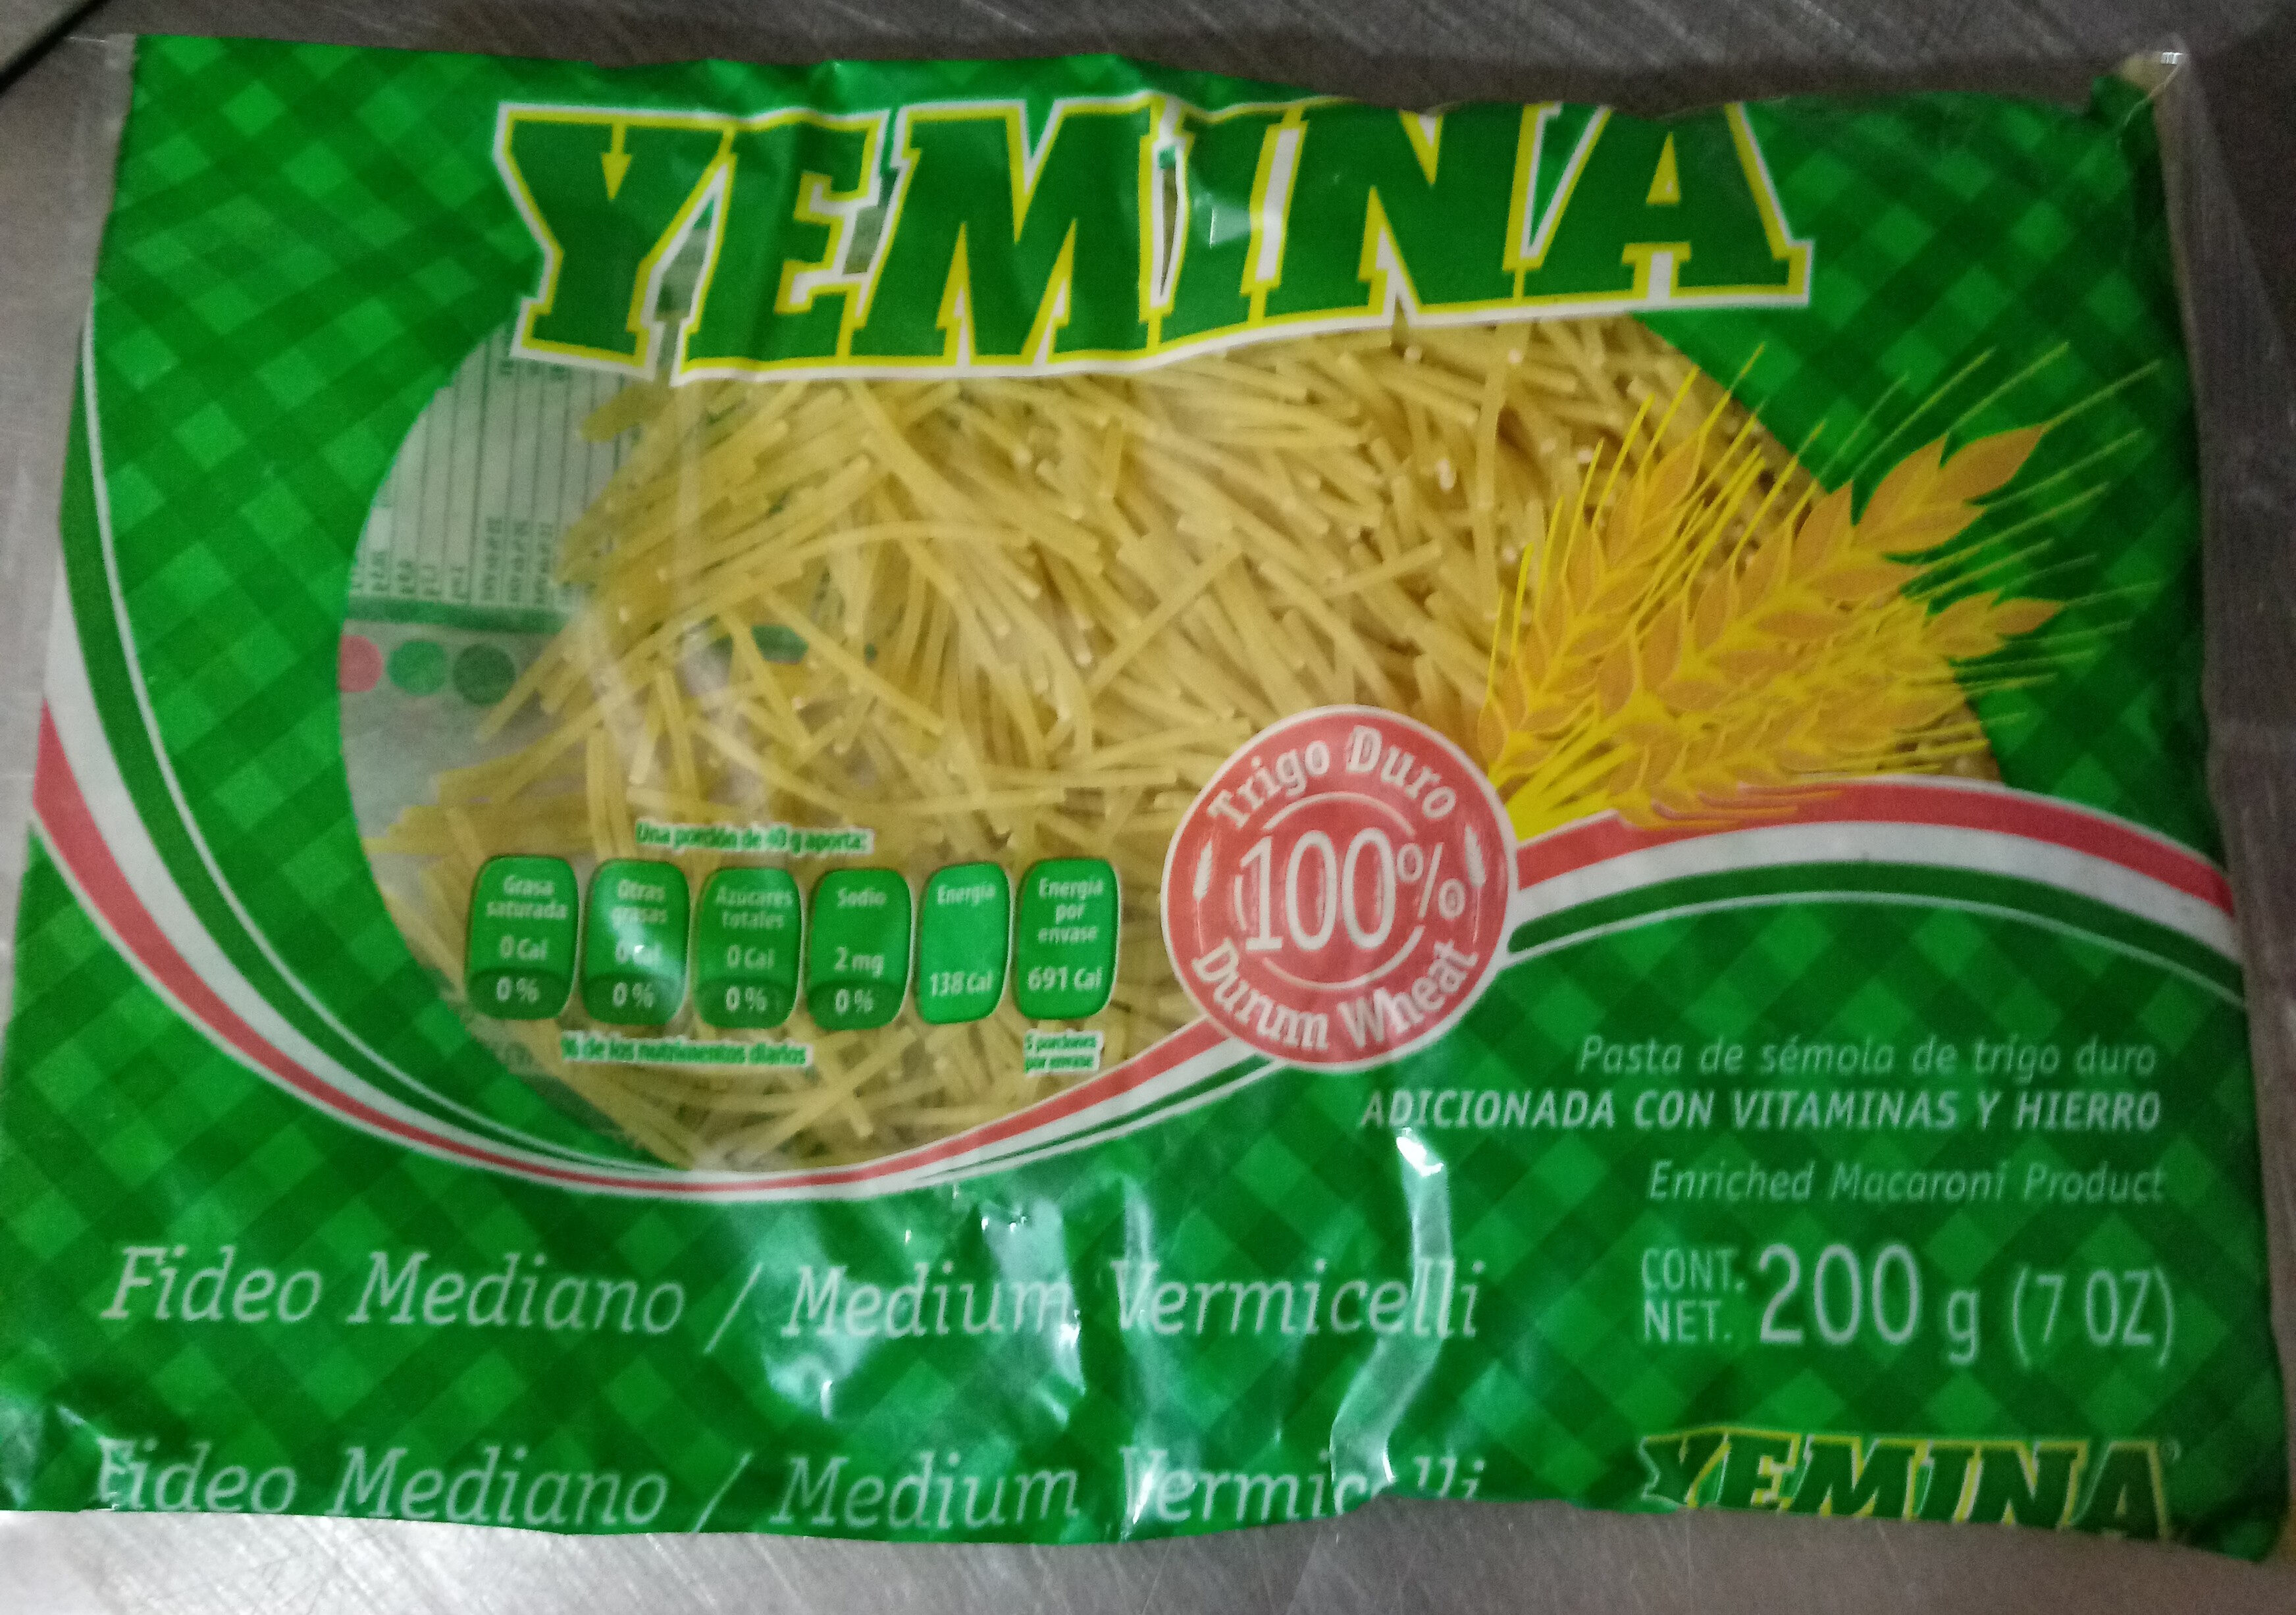 fideo mediano - Product